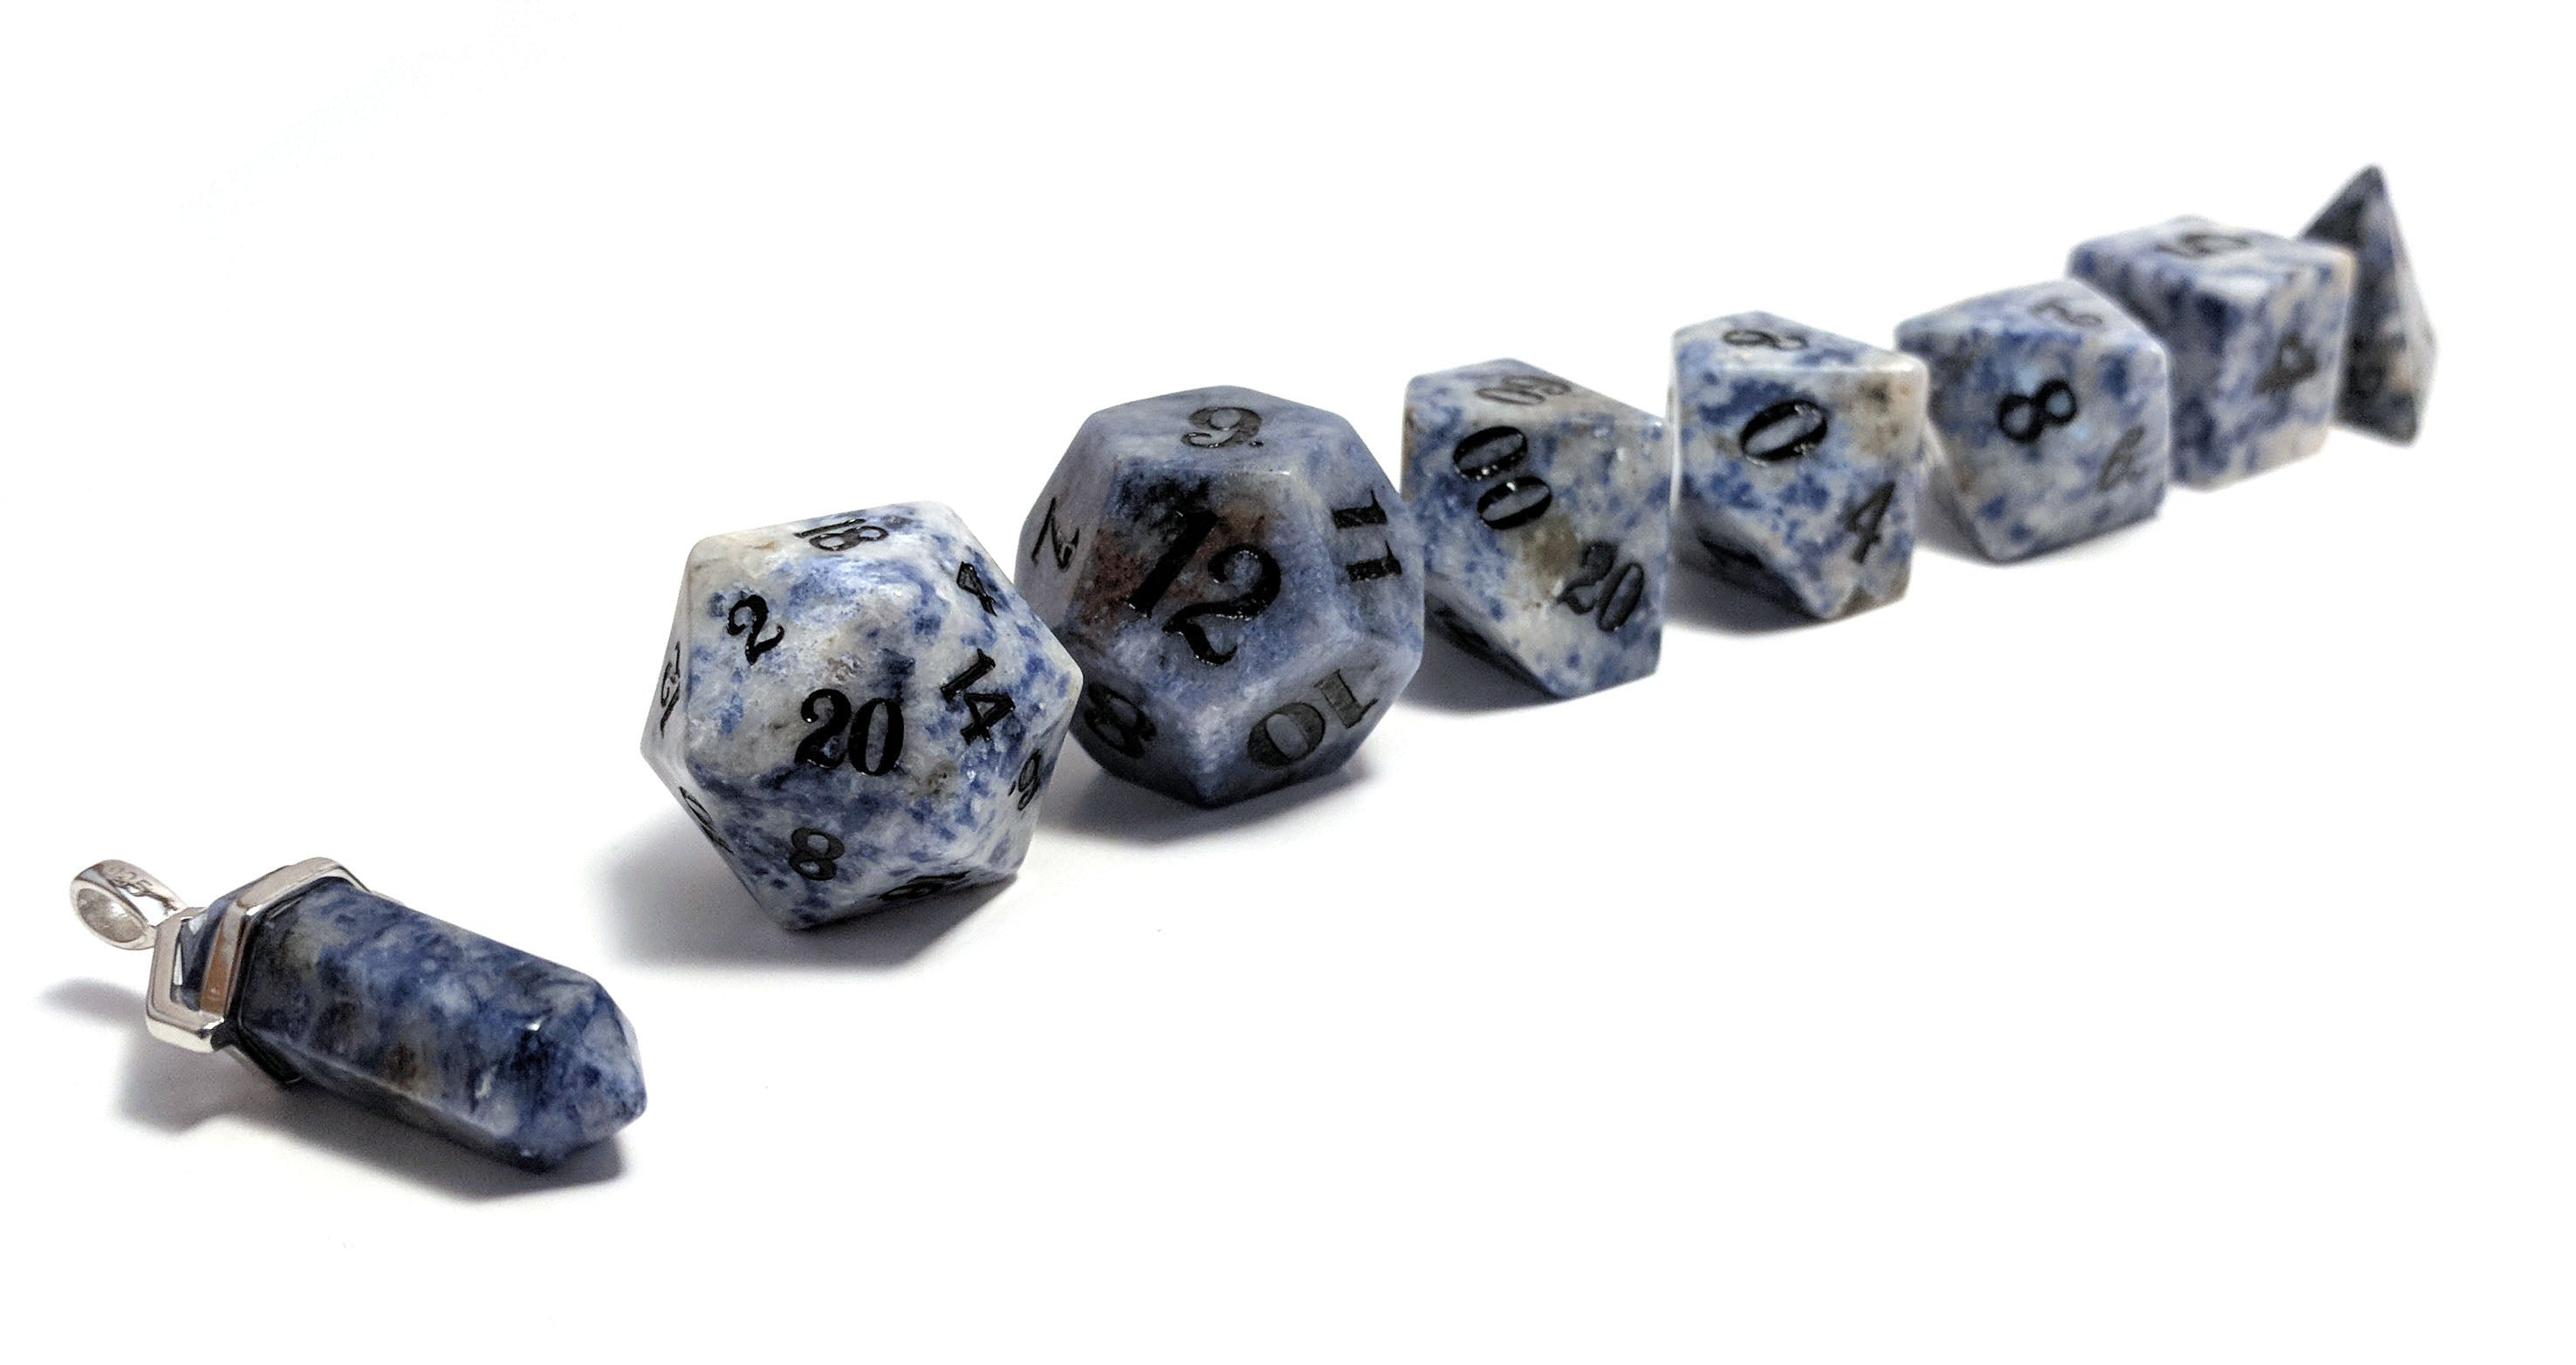 Blue Bahia Granite Hand Carved Semi-Precious Stone Dice Set